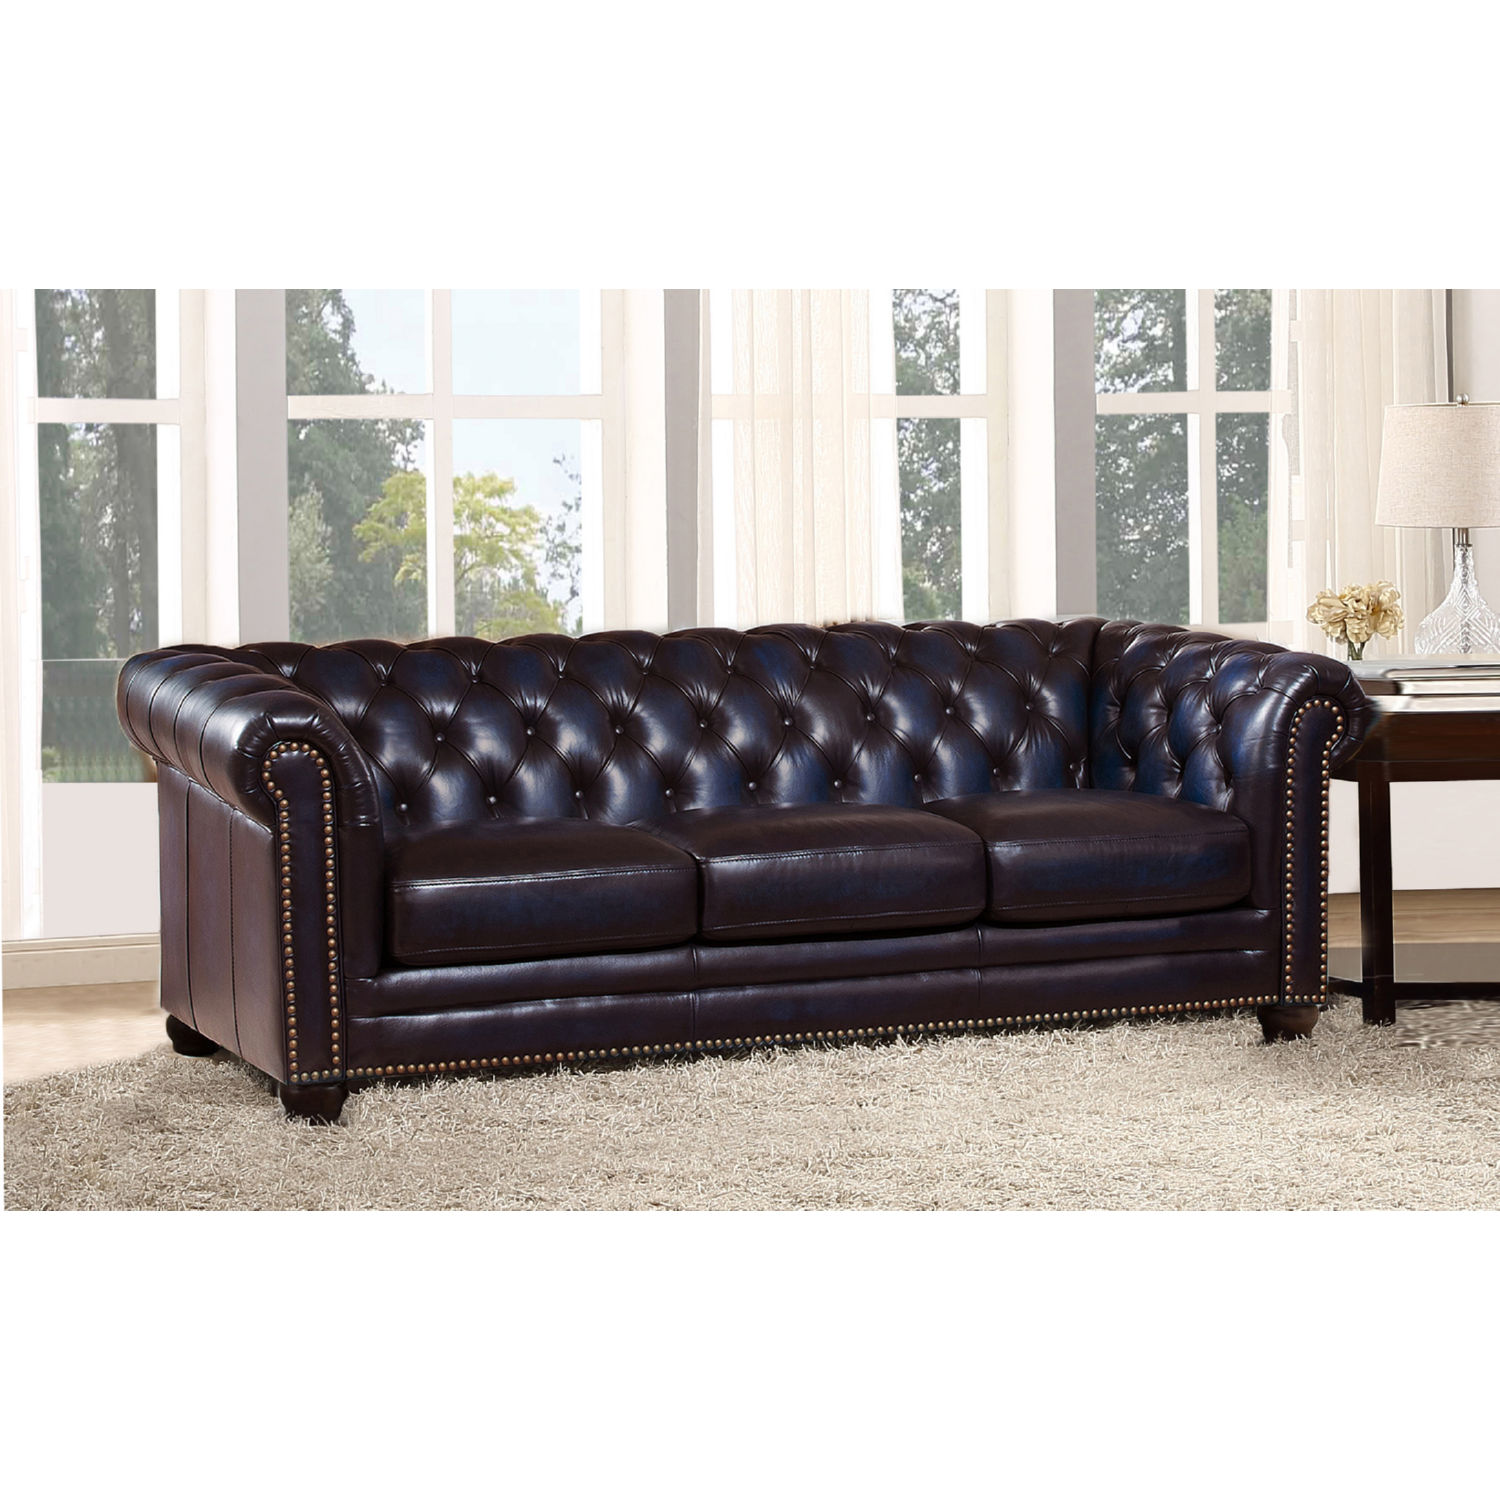 Dynasty Leather Chesterfield Sofa in Tufted Navy Blue w/ Nailhead Trim by  Hydeline Leather